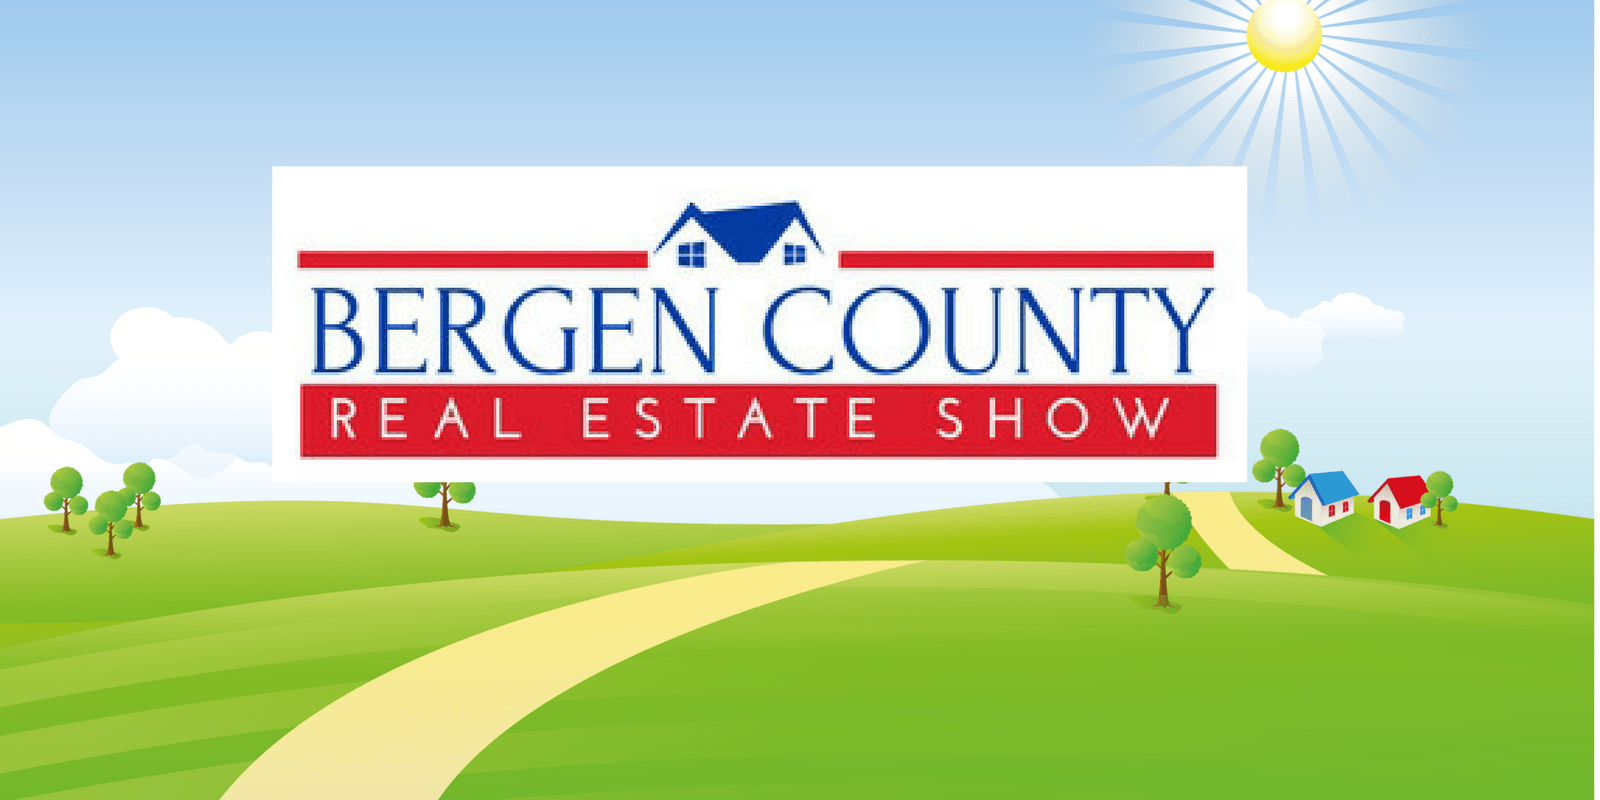 Bergen County Real Estate Show